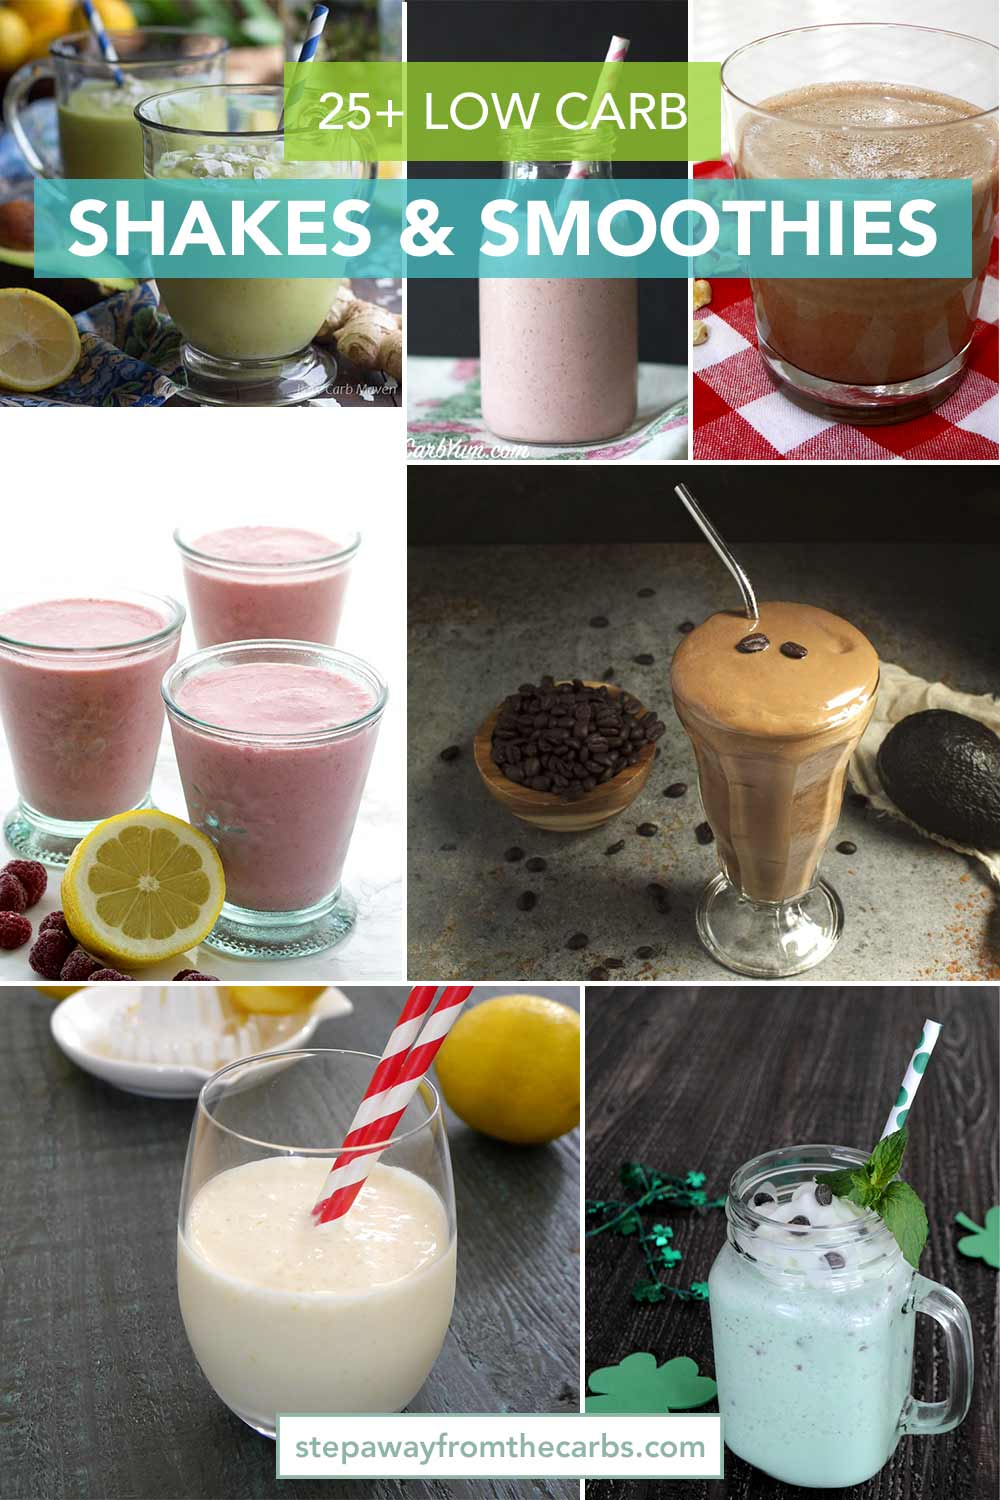 25+ Low Carb Shakes and Smoothies - keto and sugar free recipes